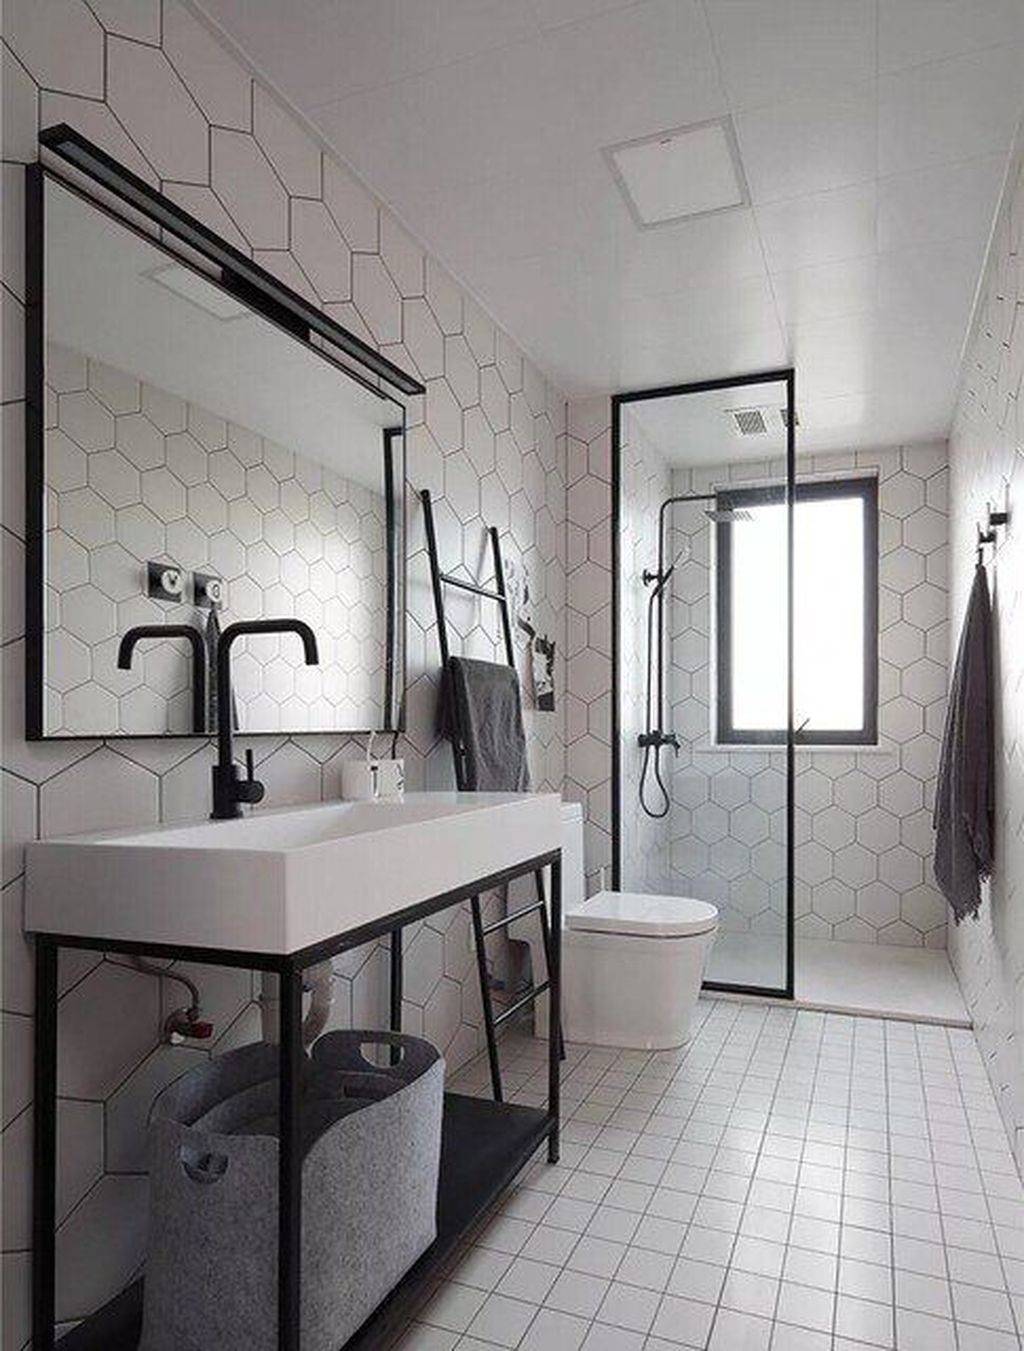 Stunning Industrial Bathroom Design Ideas 04